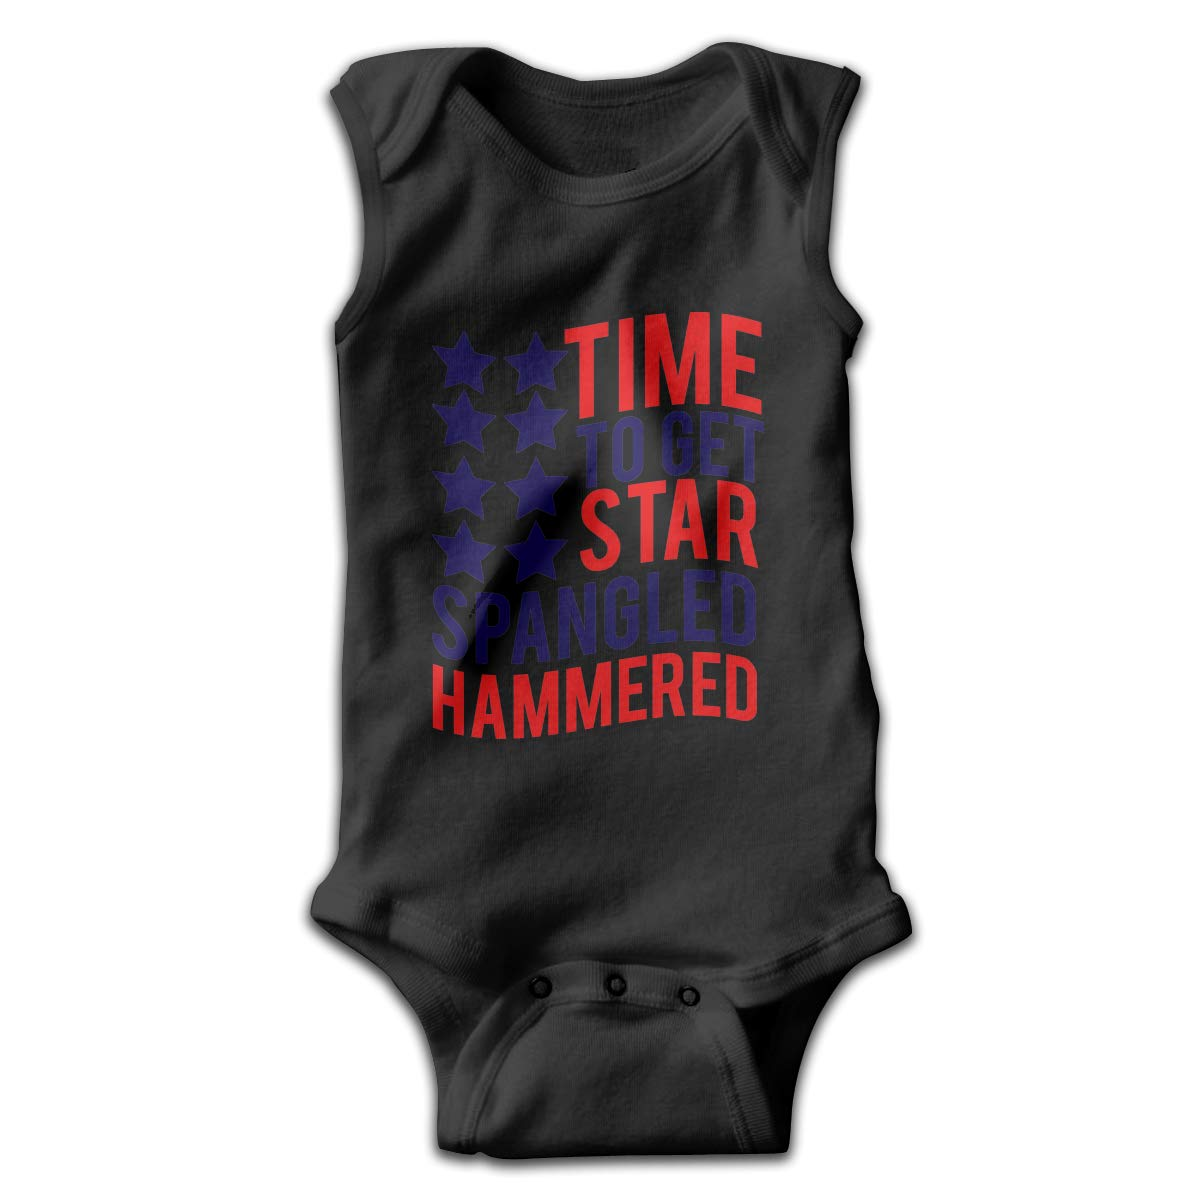 Efbj Toddler Baby Boys Rompers Sleeveless Cotton Jumpsuit,Time to Get Star Spangled Hammered Outfit Winter Pajamas